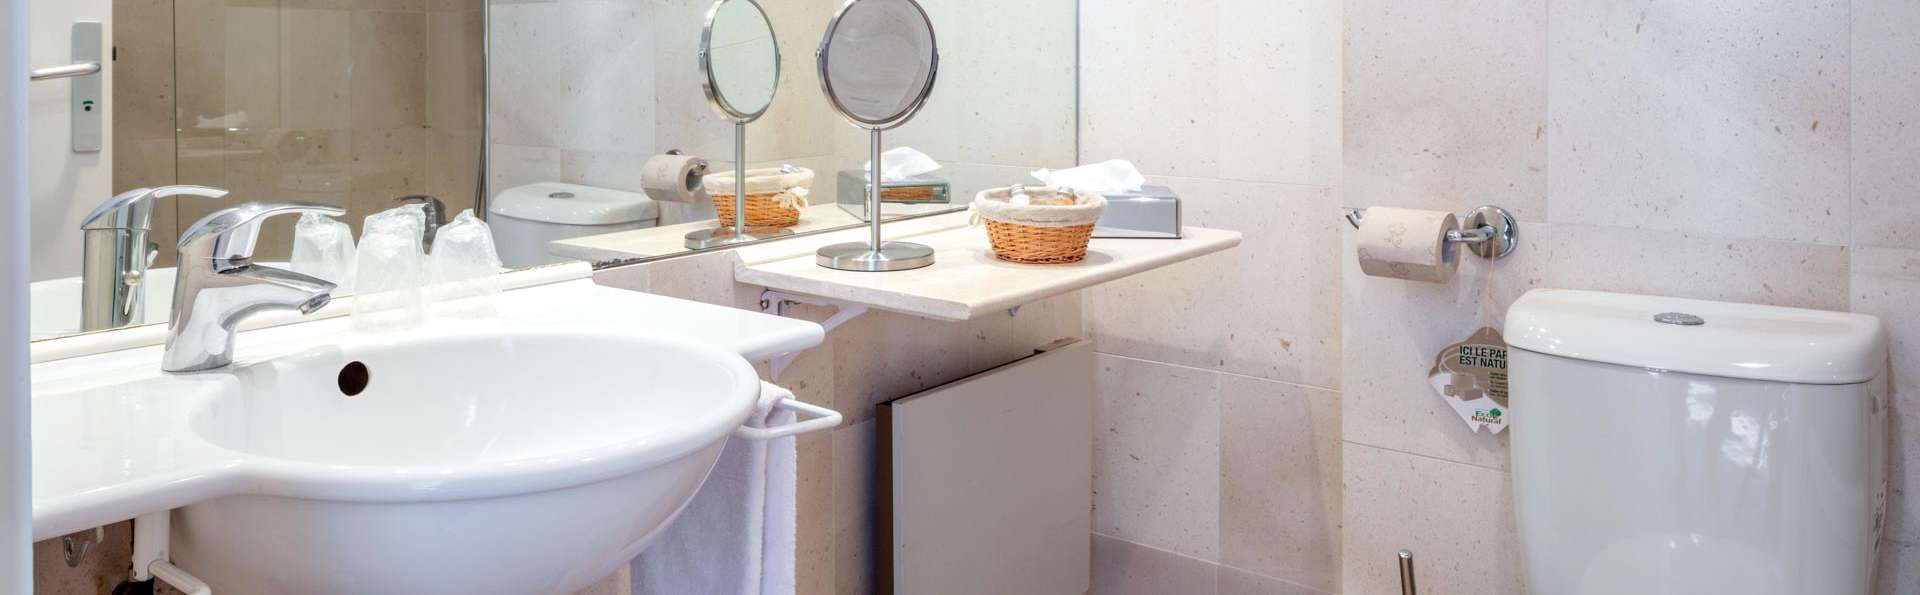 Garrigae Manoir de Beauvoir  - EDIT_BATHROOM_03.jpg